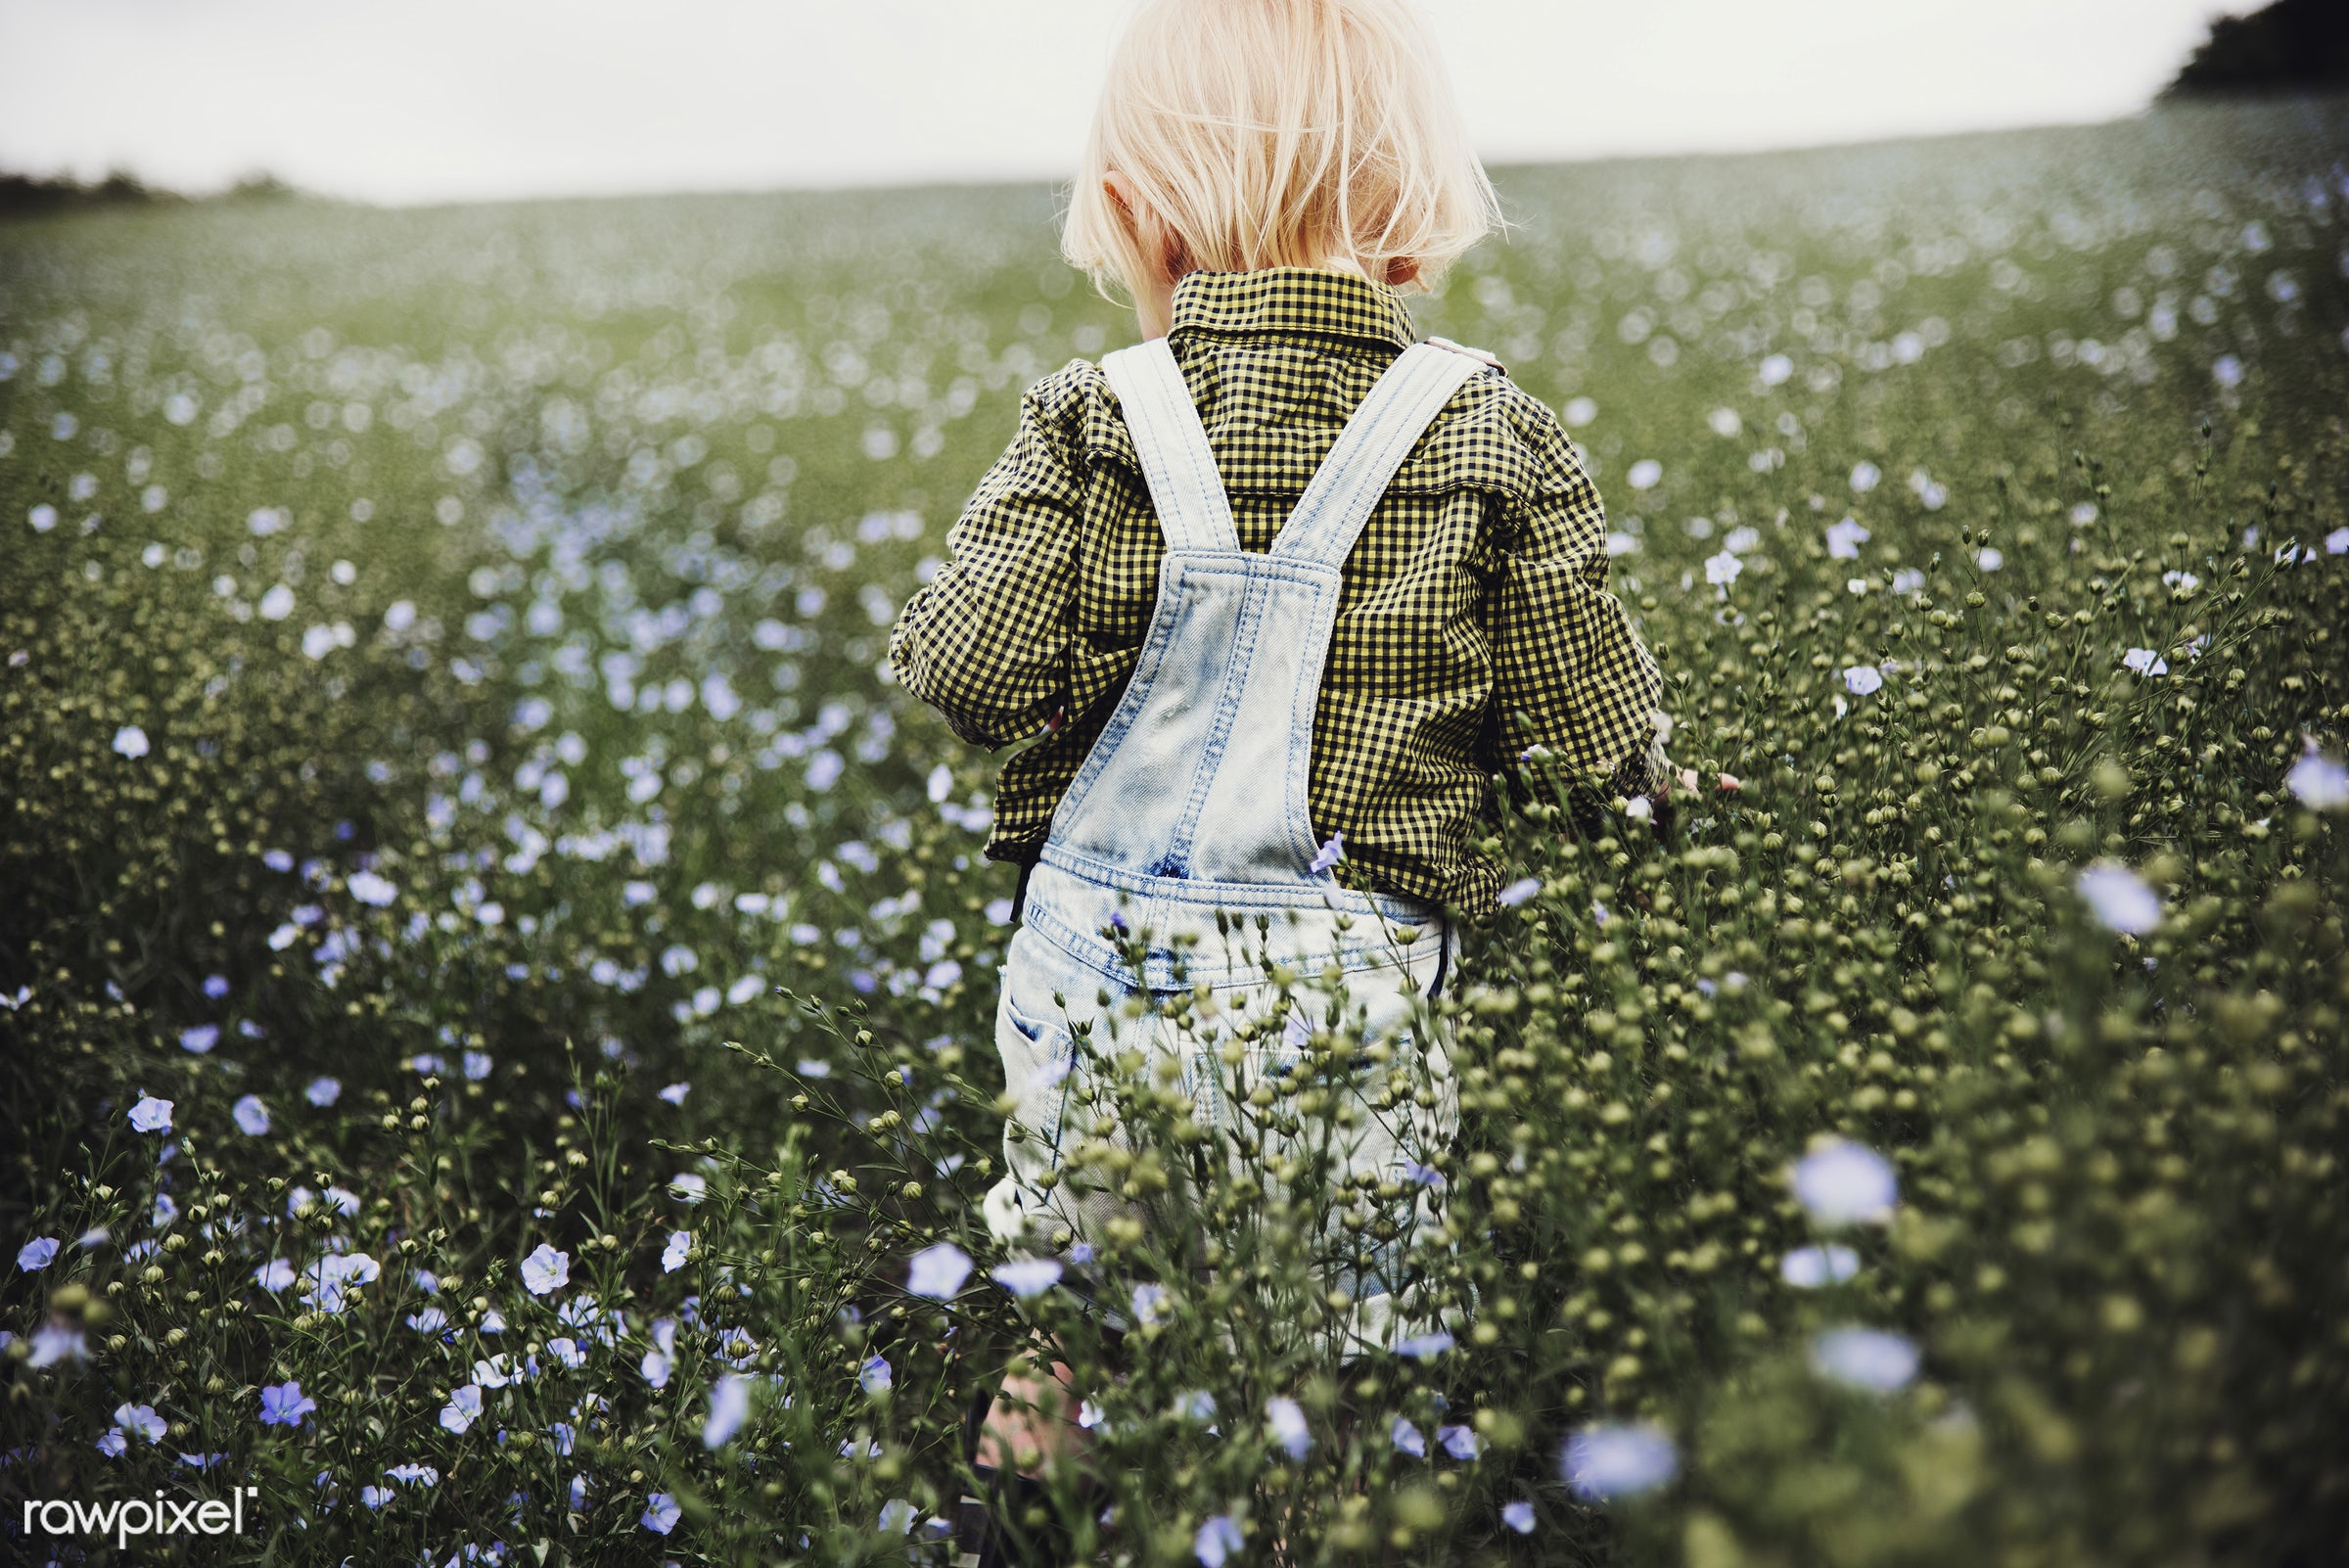 arboretum, backyard, bloom, blooming, botanical, botany, boy, child, country, countryside, cultivate, cultivating, field,...